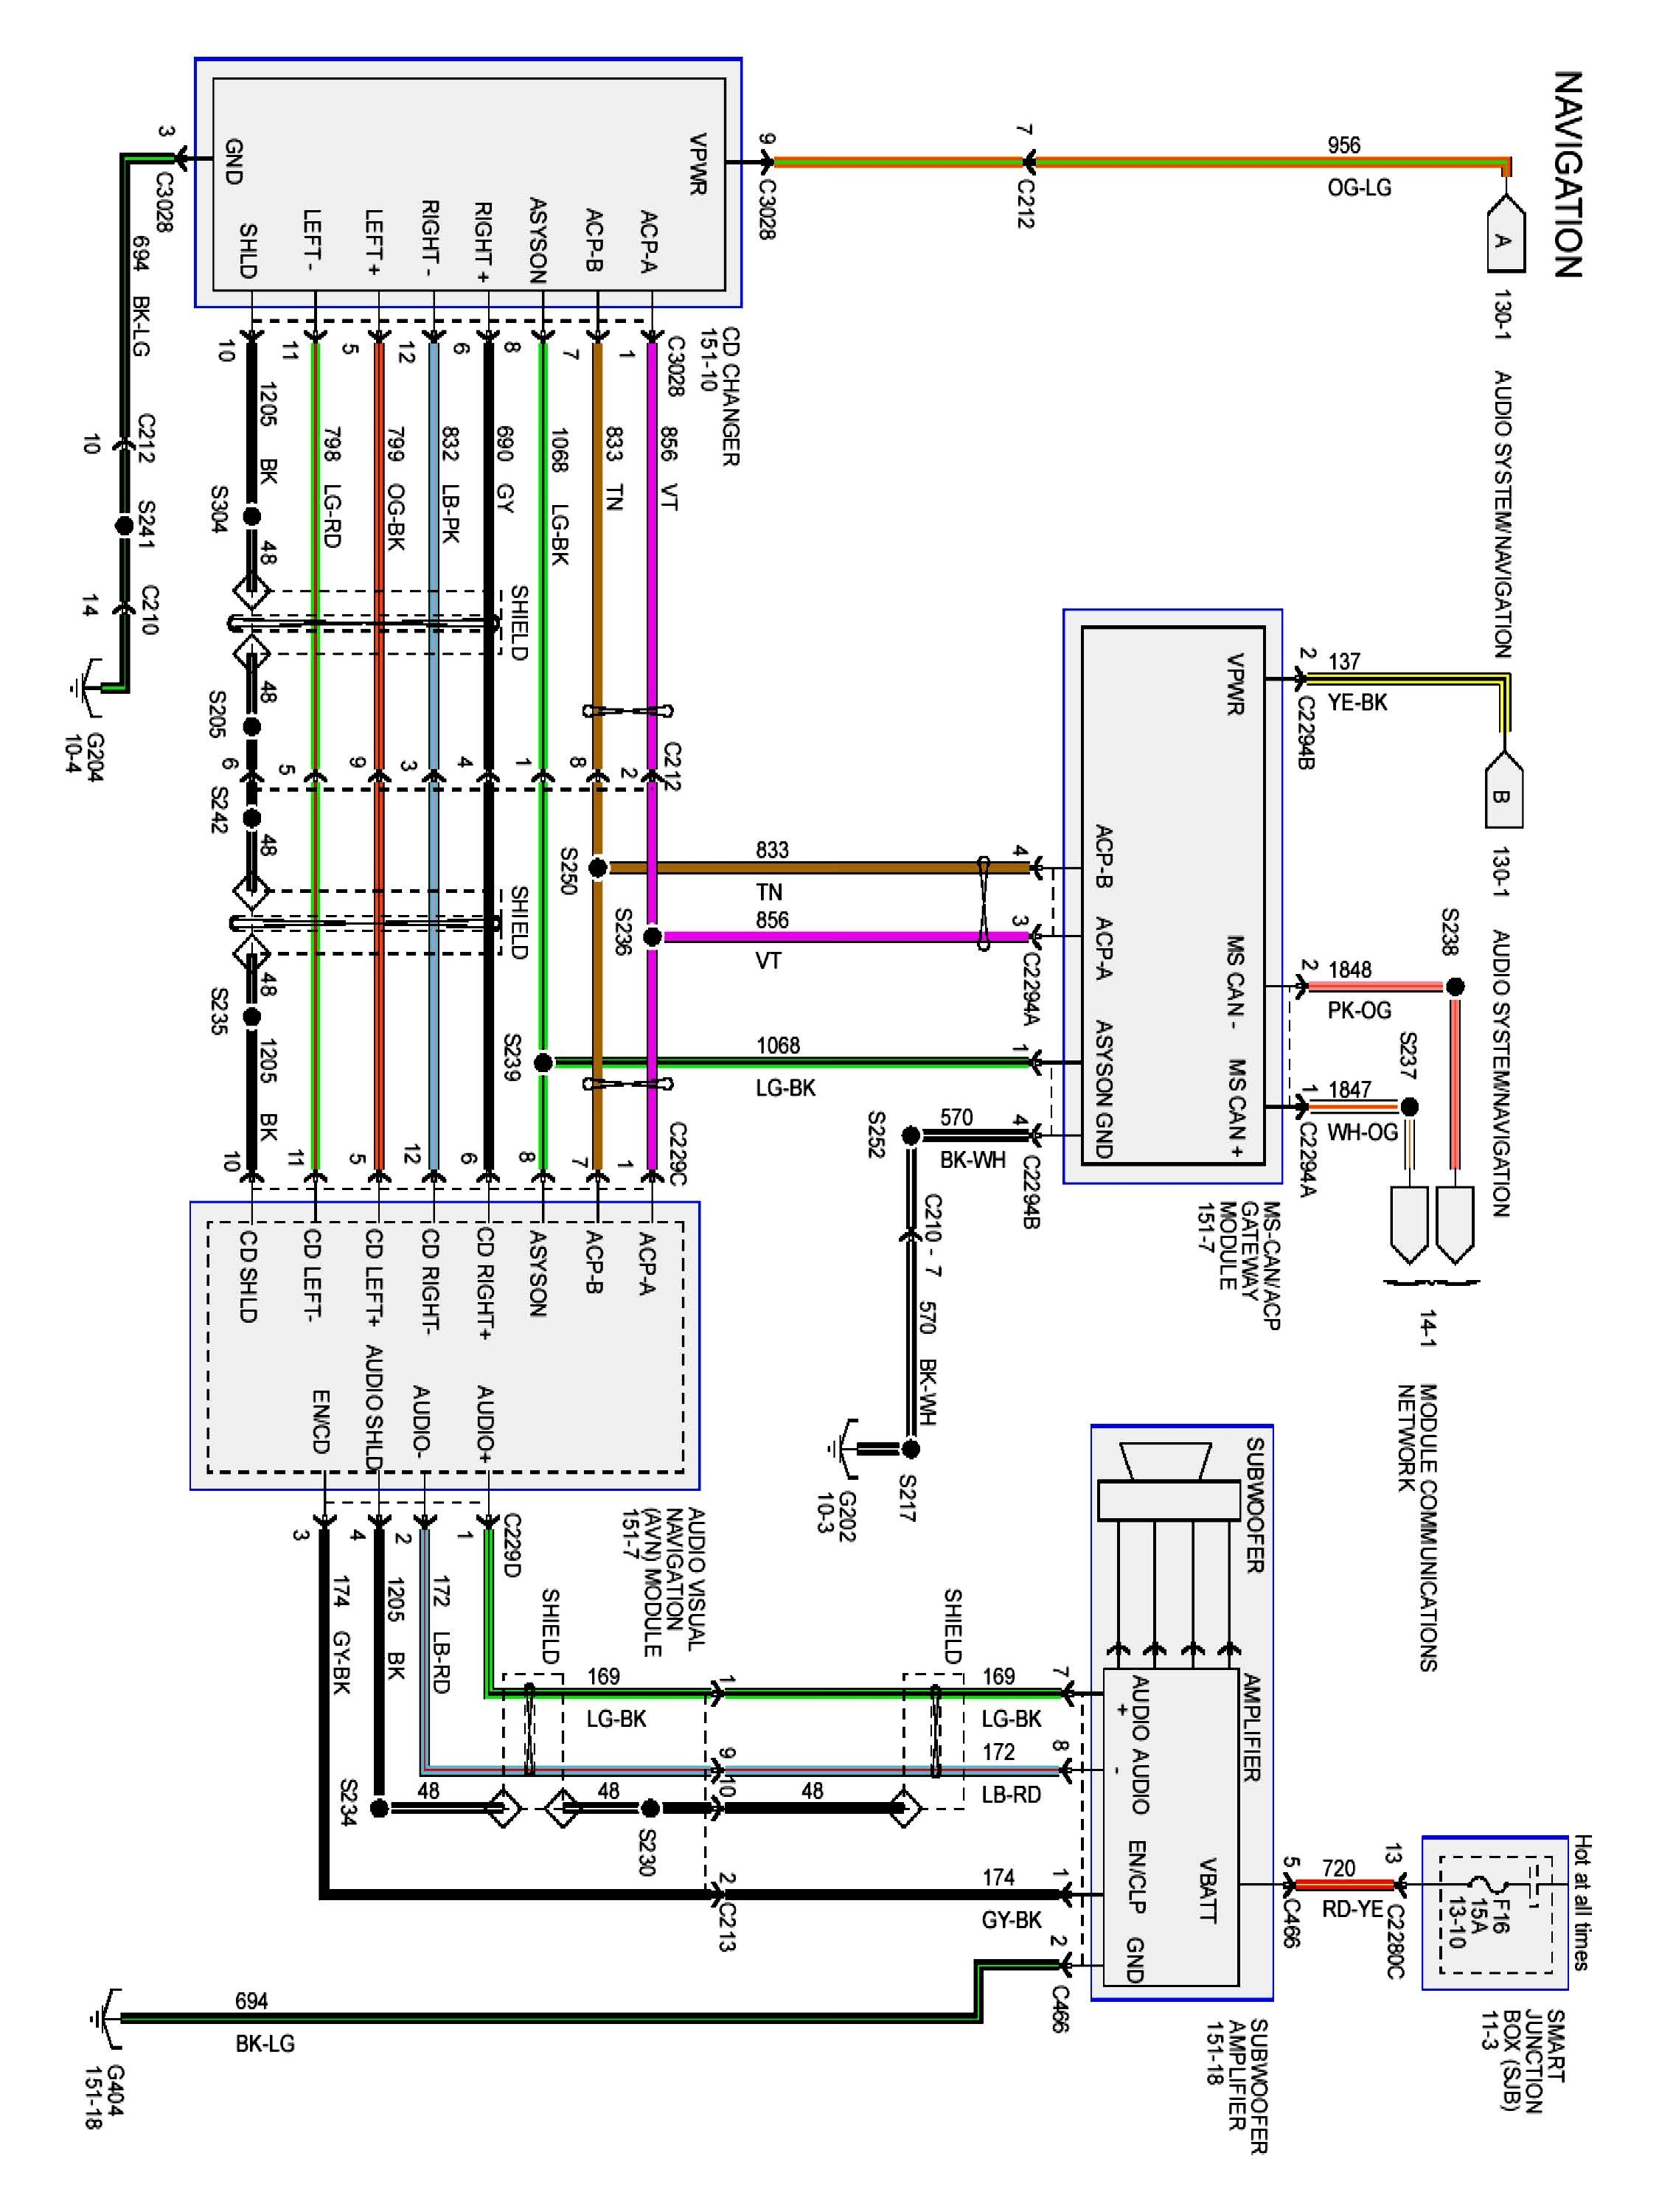 Trailer Connector Wiring Diagram On 1990 Chevy Truck Wiring Diagram